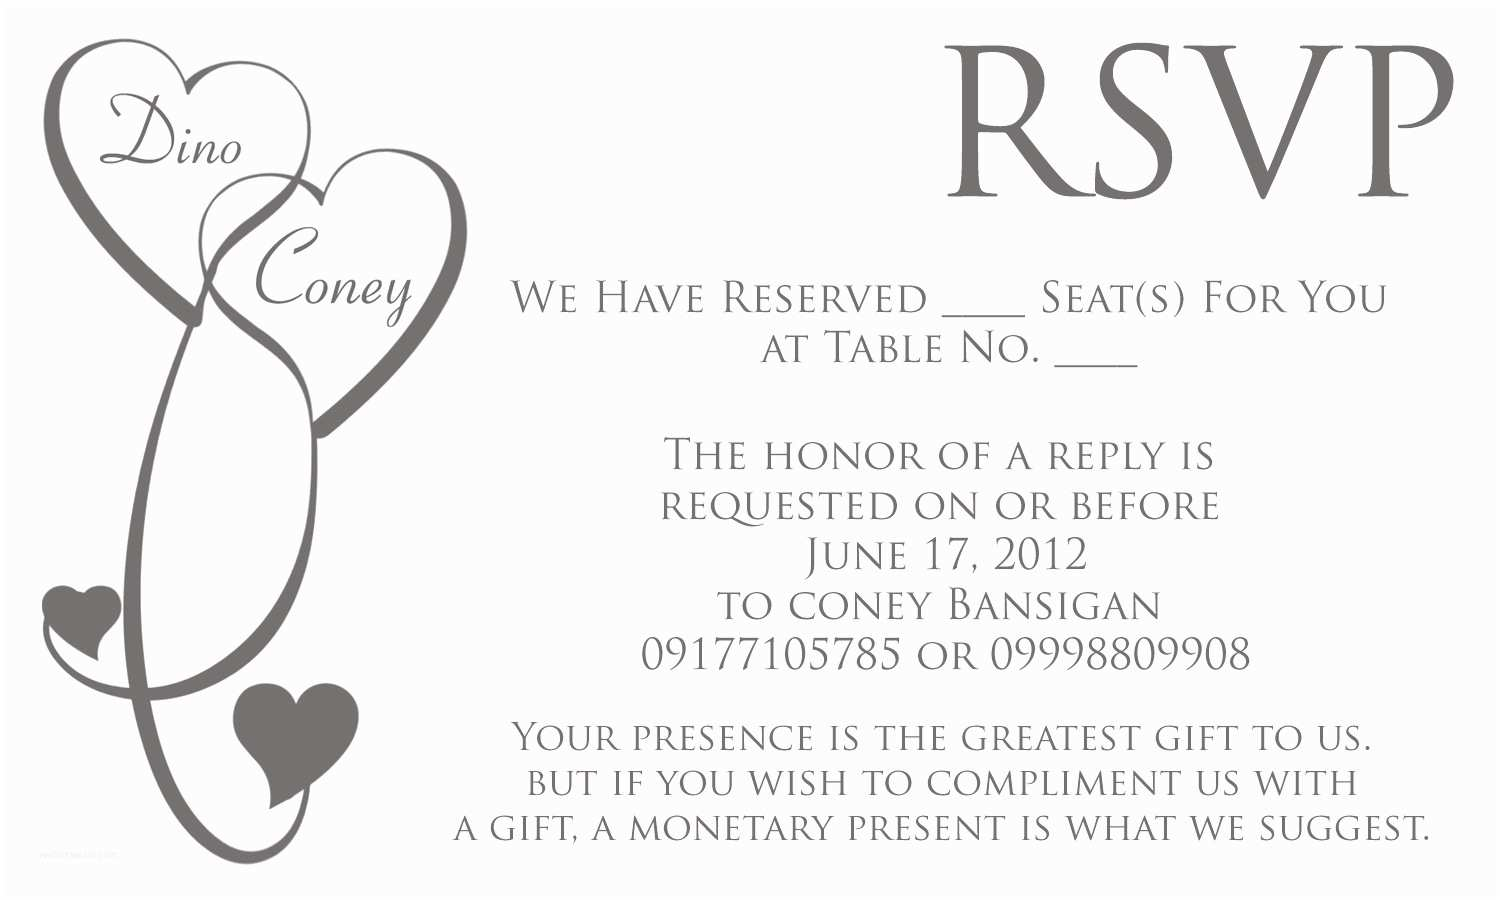 Wedding Invitation Rsvp Wording Samples Invitation Wordings Rsvp